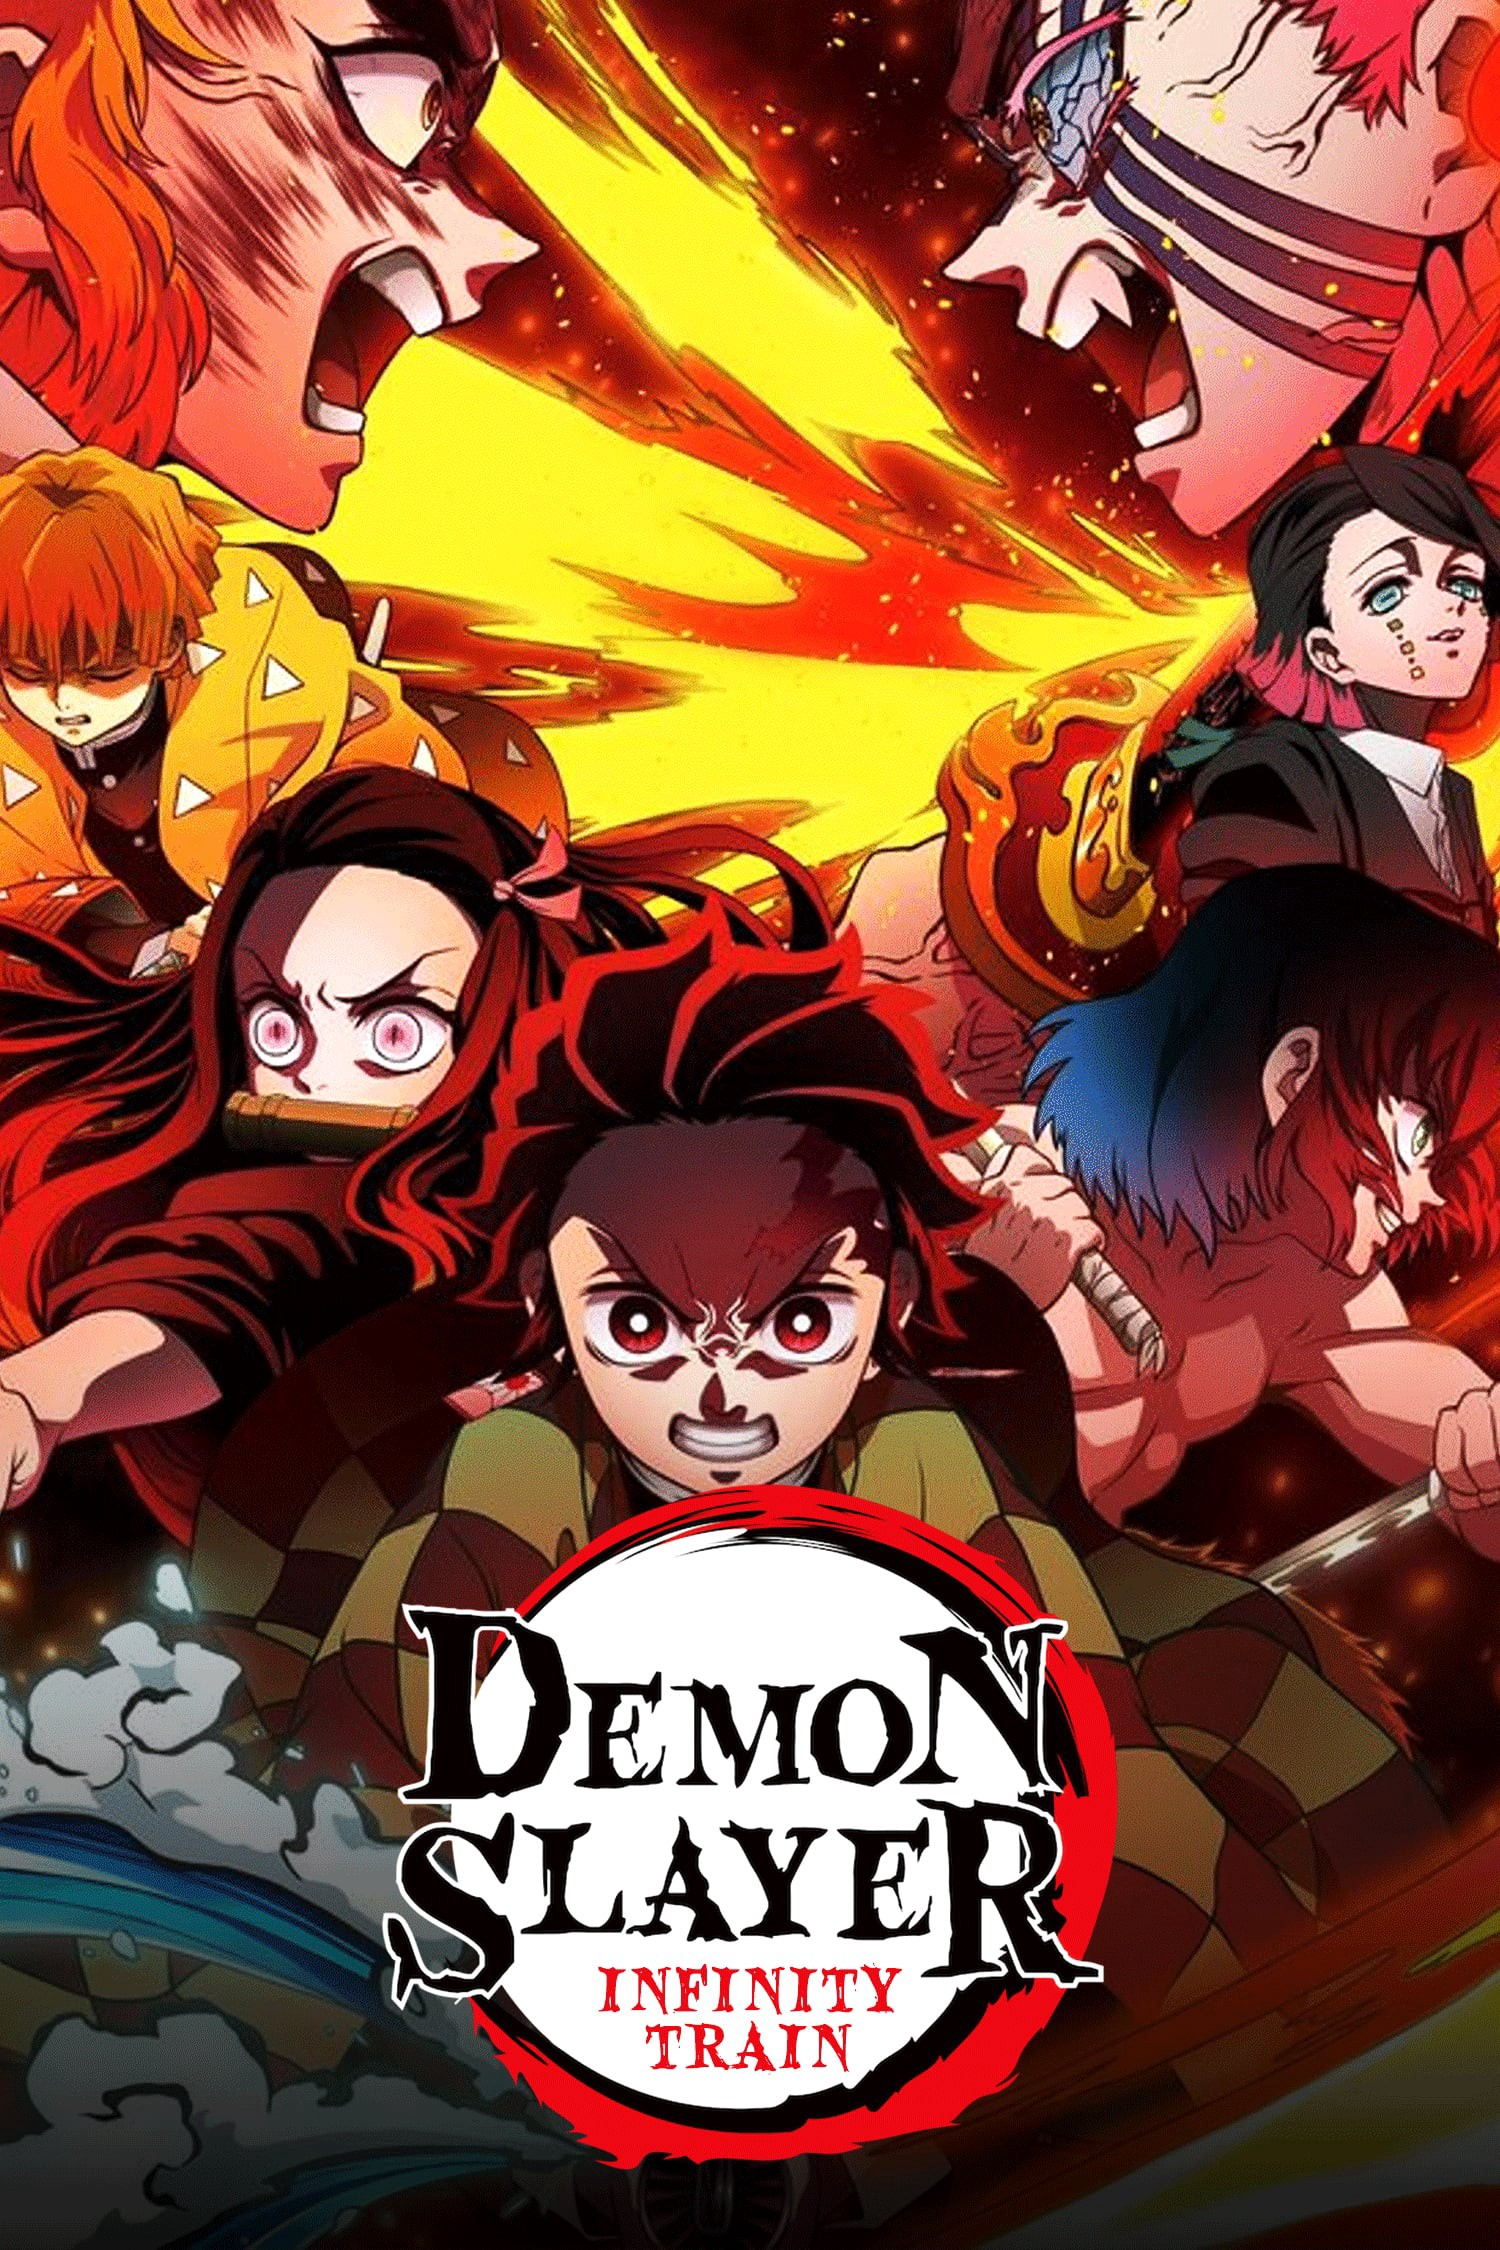 Kimetsu No Yaiba Vostfr : kimetsu, yaiba, vostfr, VOSTFR#], Demon, Slayer, Train, L'infini, Streaming, (2020), REGARDER, Complet, Ligne, HD|FRANCAIS:, Home:, [#VOSTFR#]